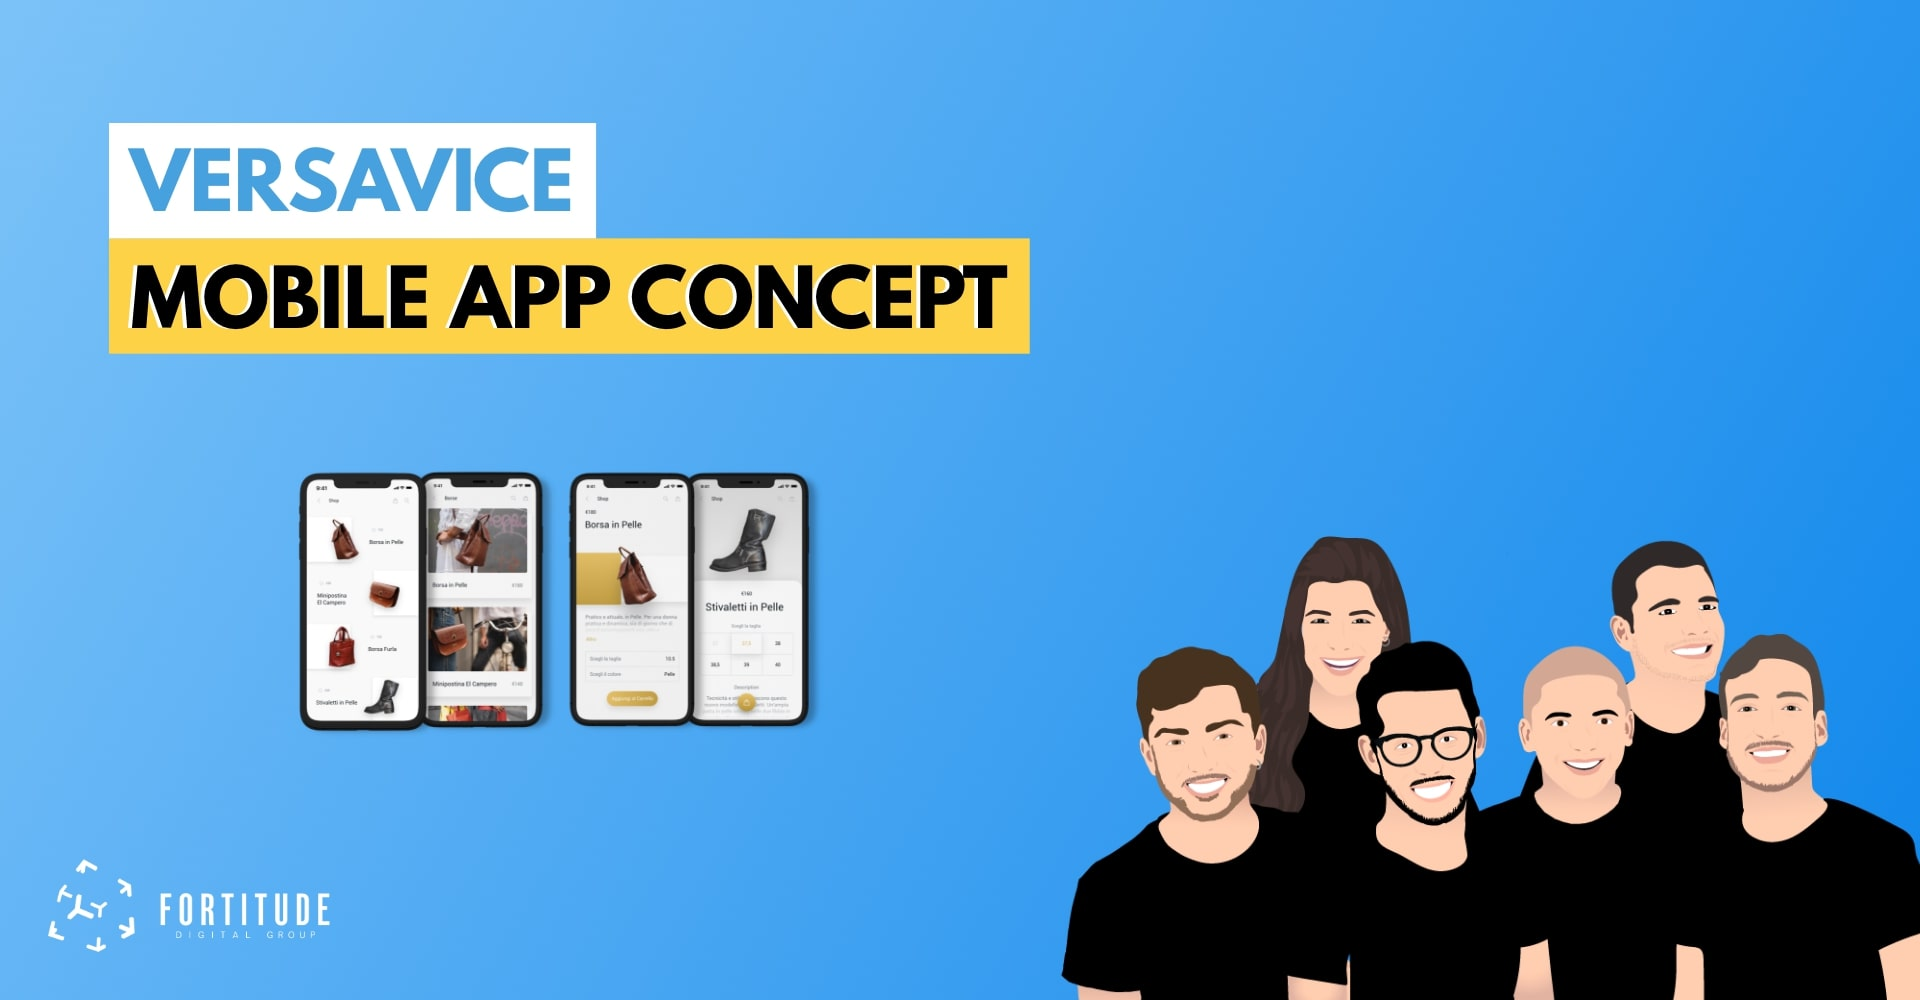 Versavice App: Concept Design - Fortitude Digital Group